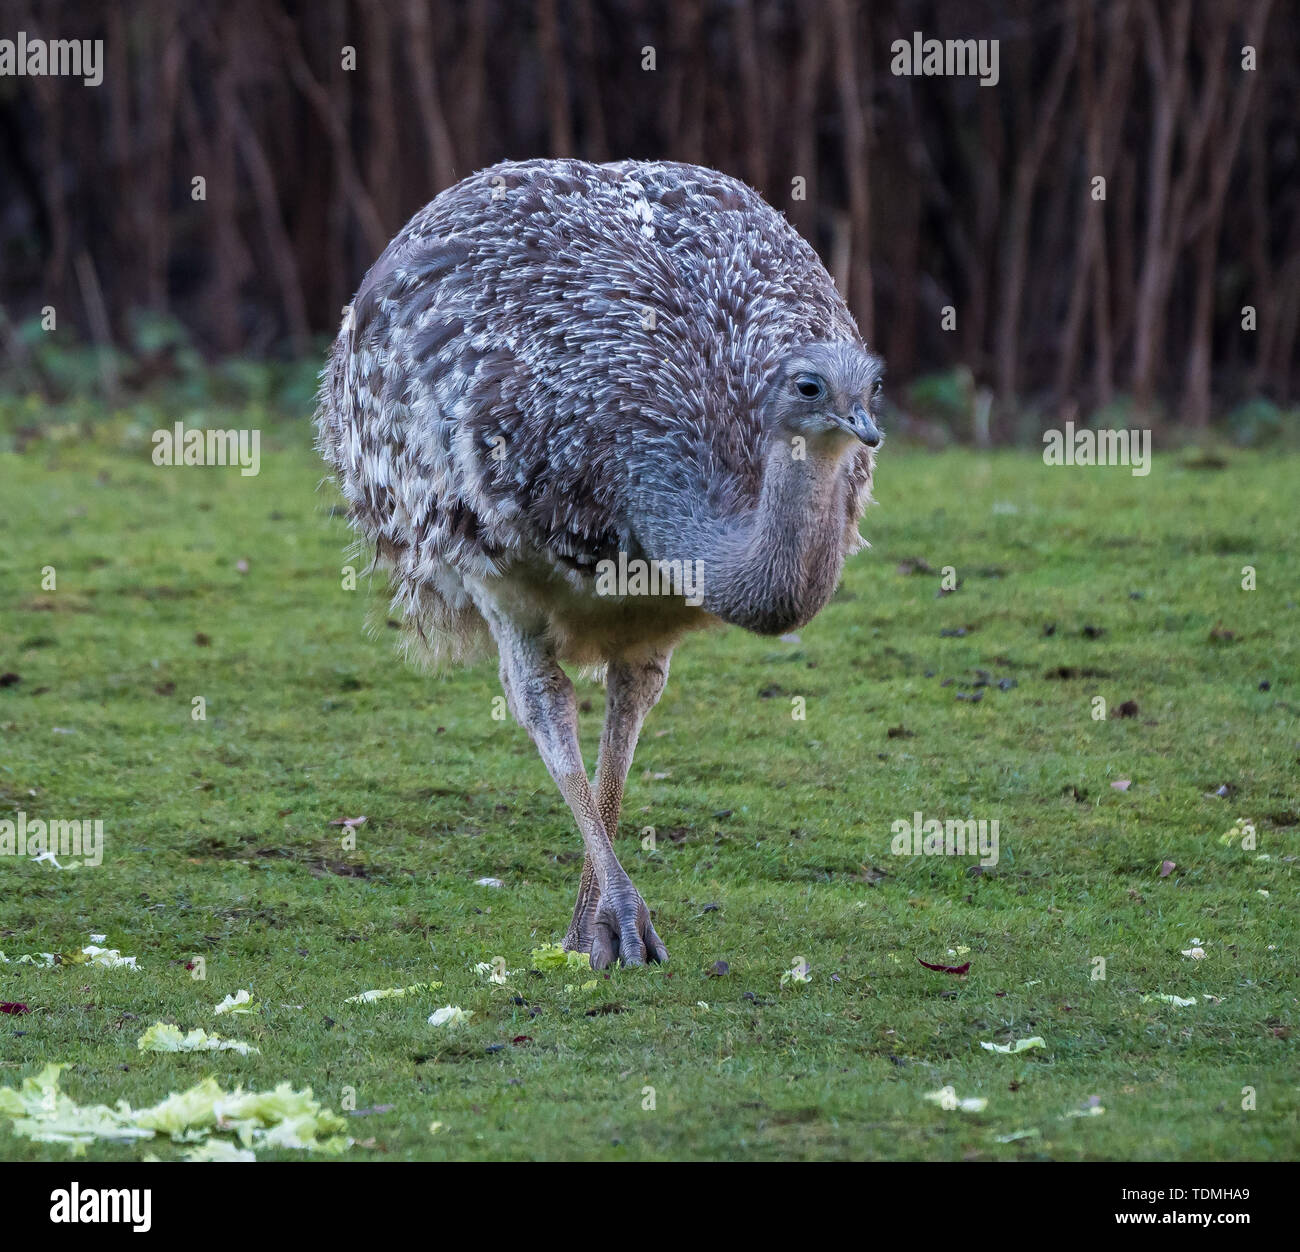 Darwin's rhea, Rhea pennata also known as the lesser rhea. It is a large flightless bird, but the smaller of the two extant species of rheas. - Stock Image